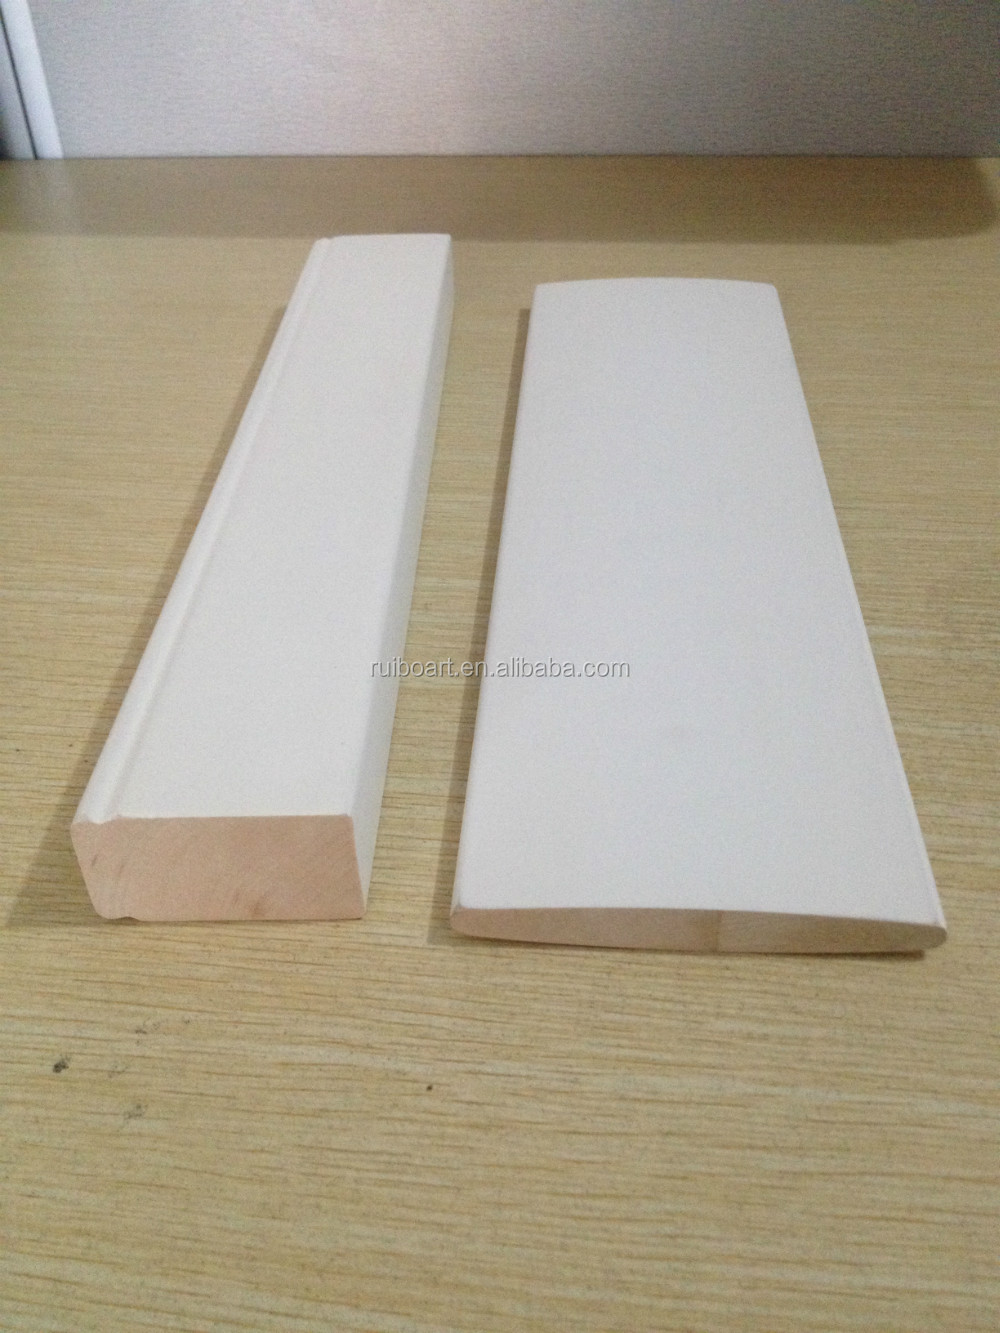 supply decorative plaster cornices/wood baseboard moulding